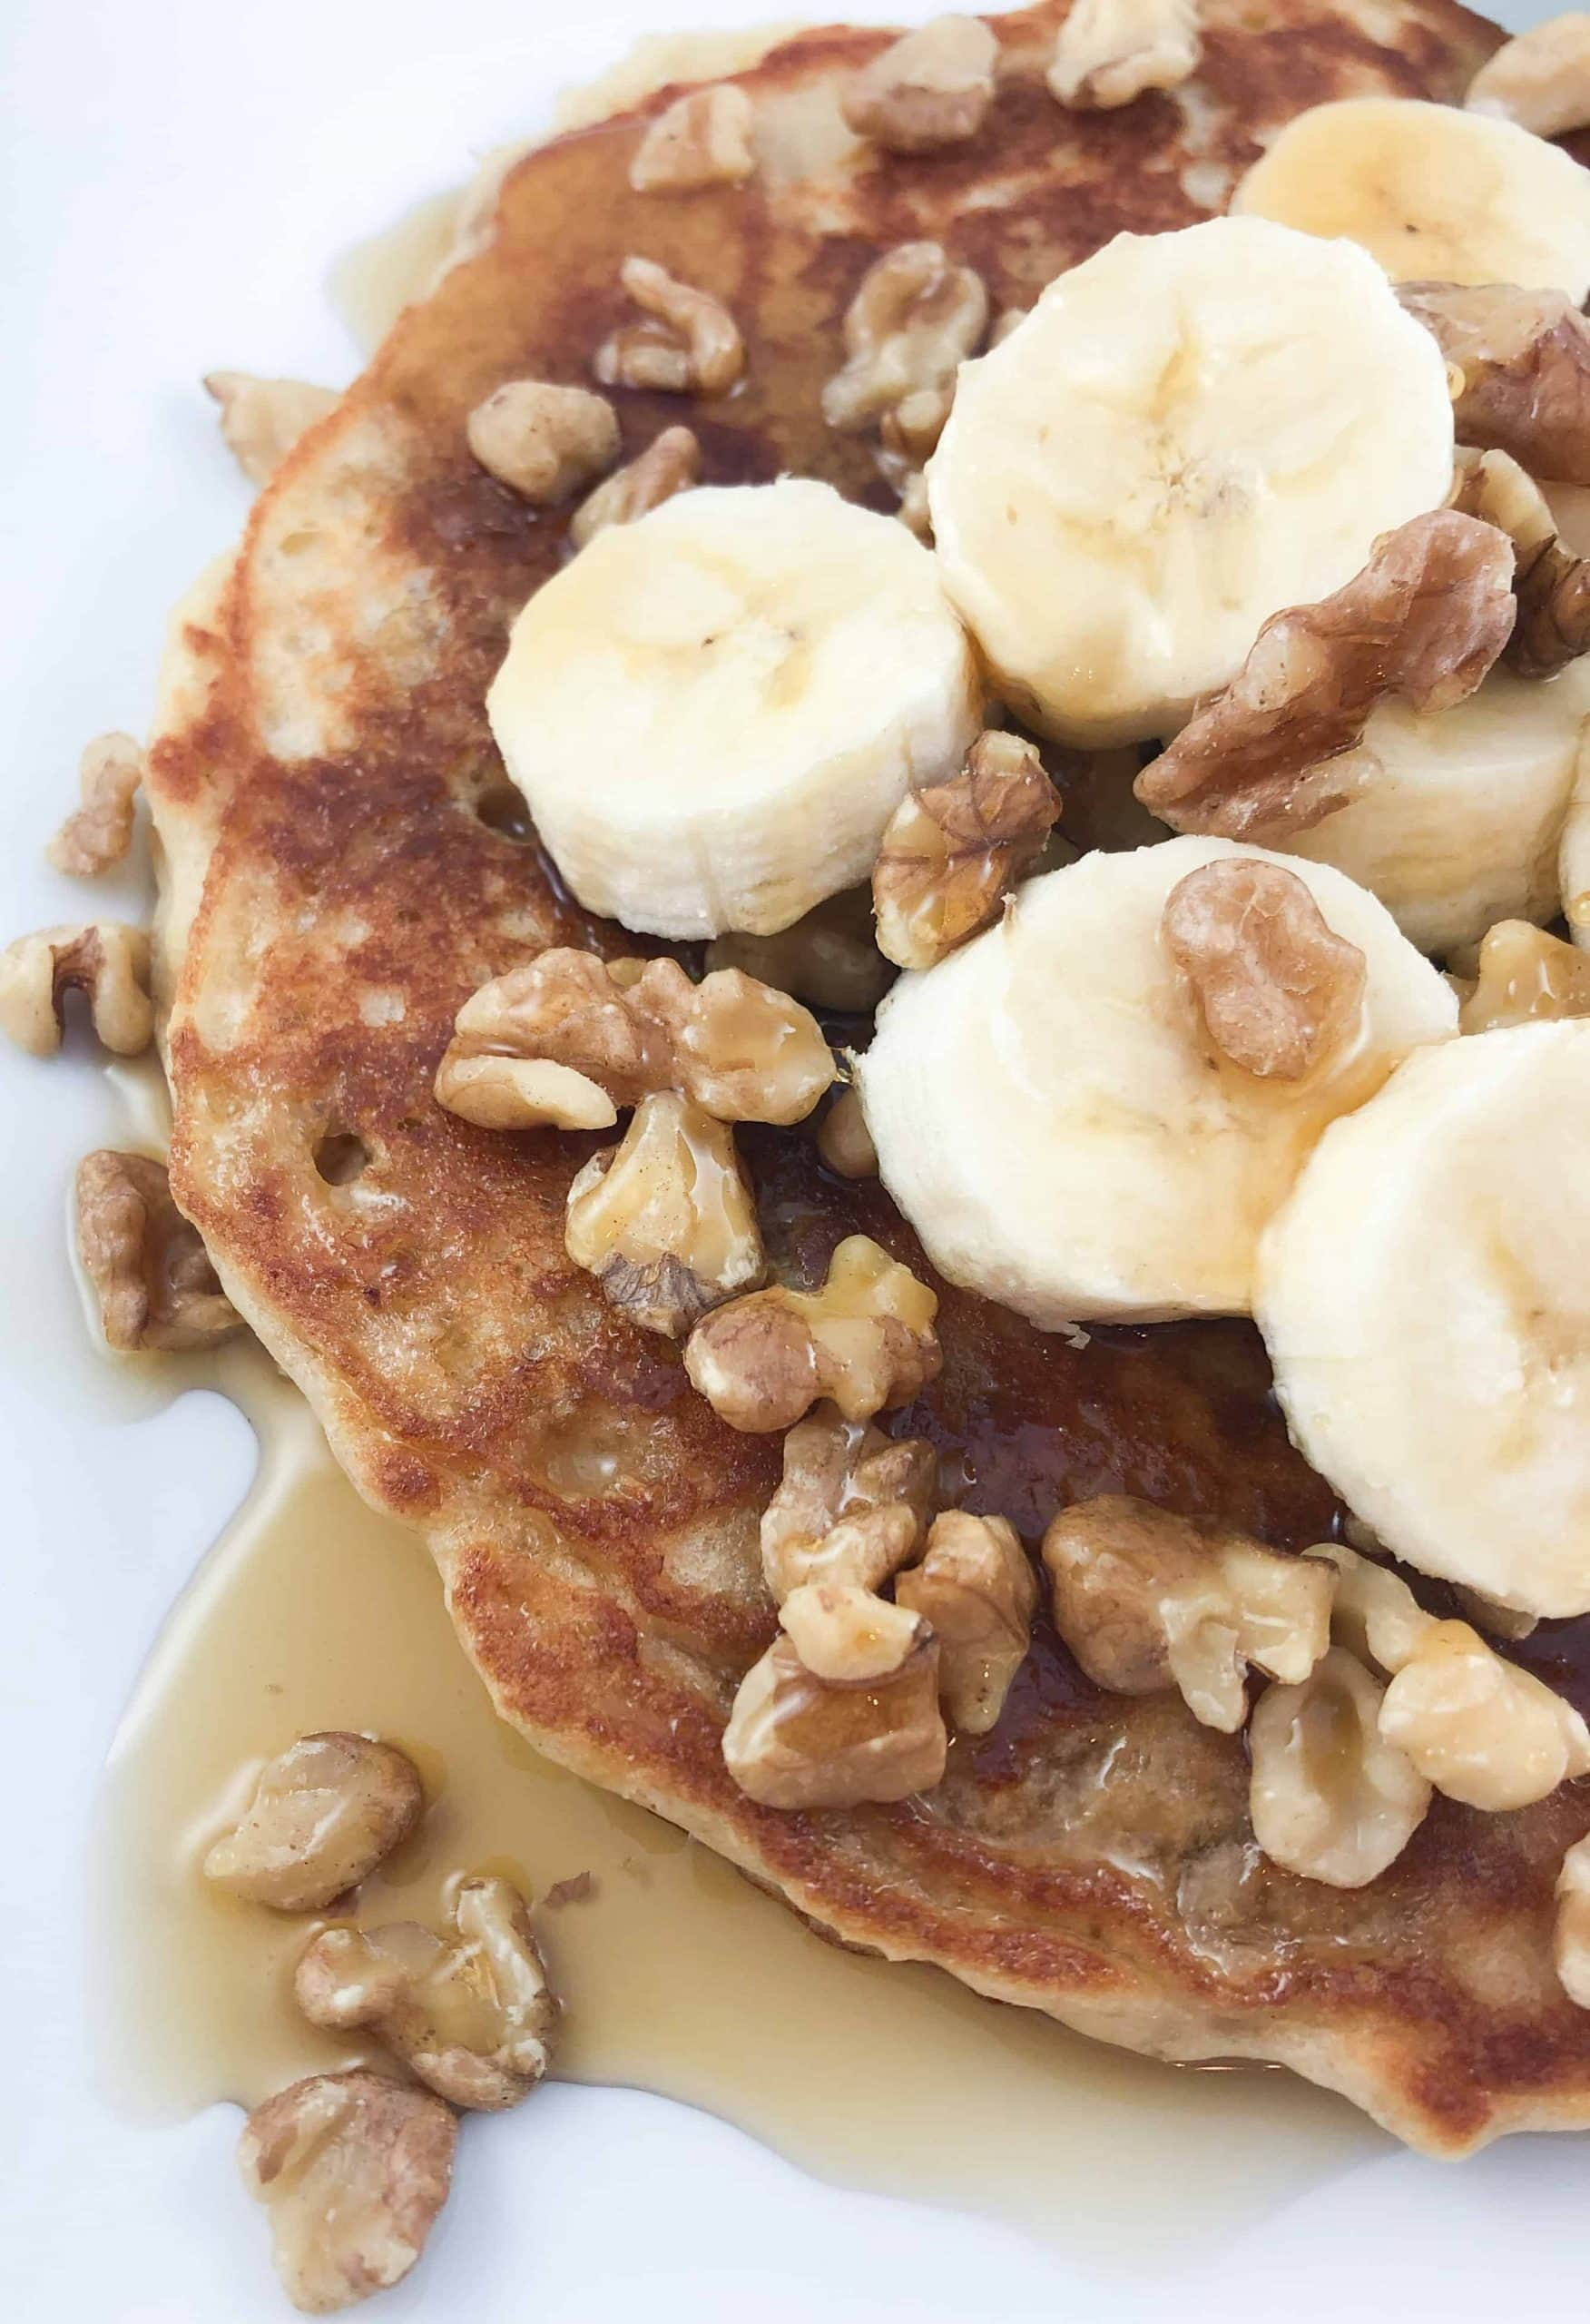 healthy oatmeal pancakes with banana nut toppings and pure maple syrup